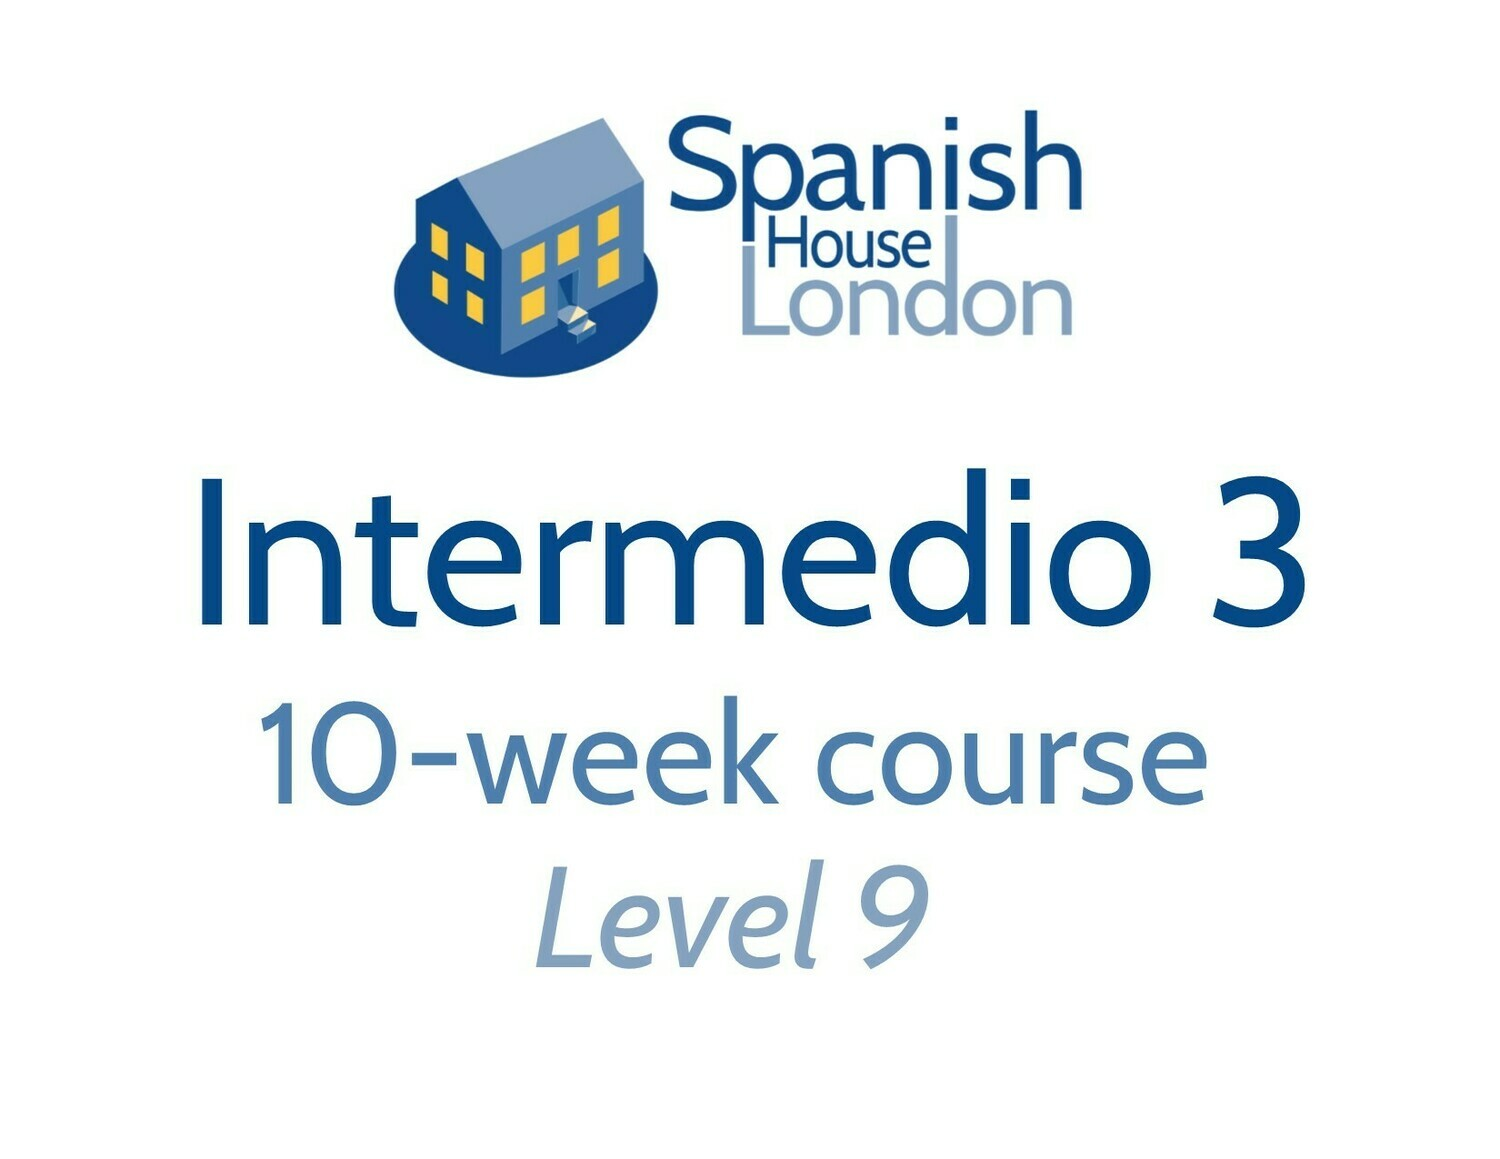 Intermedio 3 Course starting on 18th November at 6pm in Clapham North